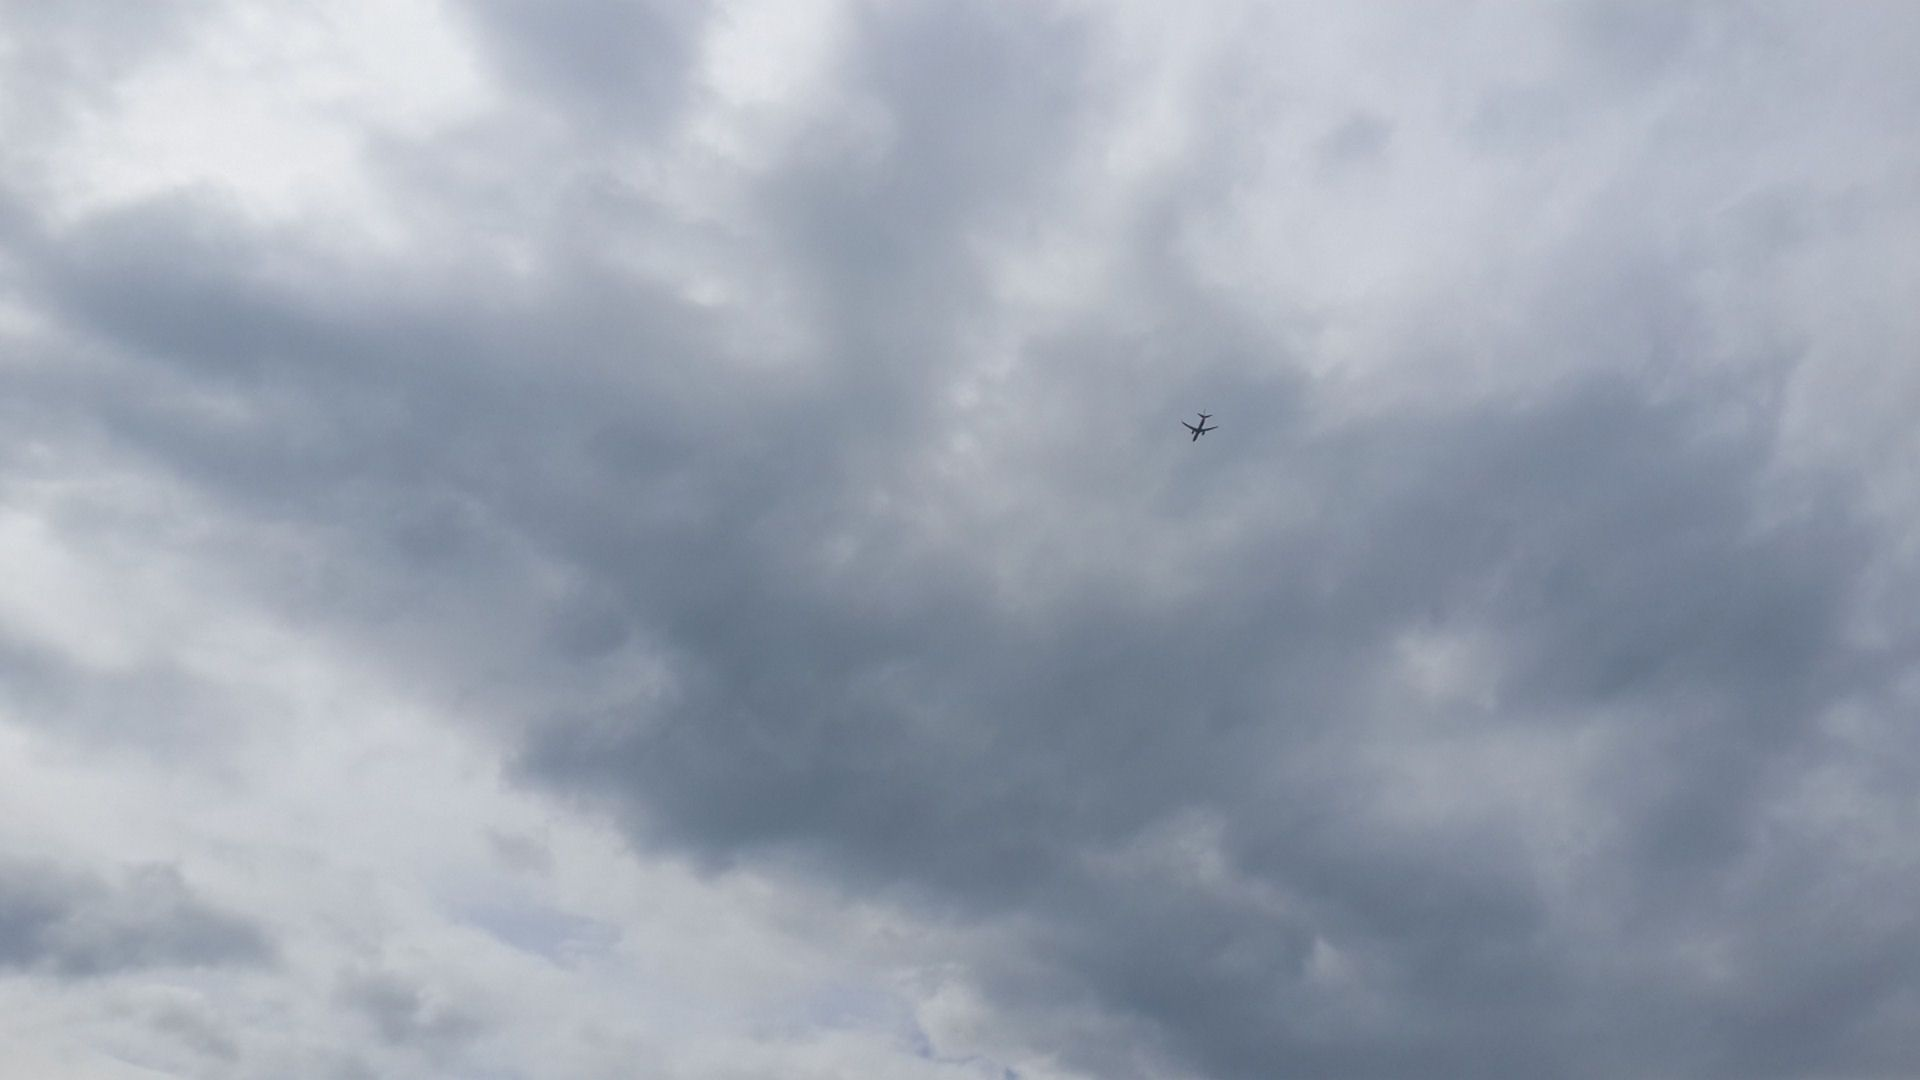 Plane in cloudy sky. Photo by Nail Eser.